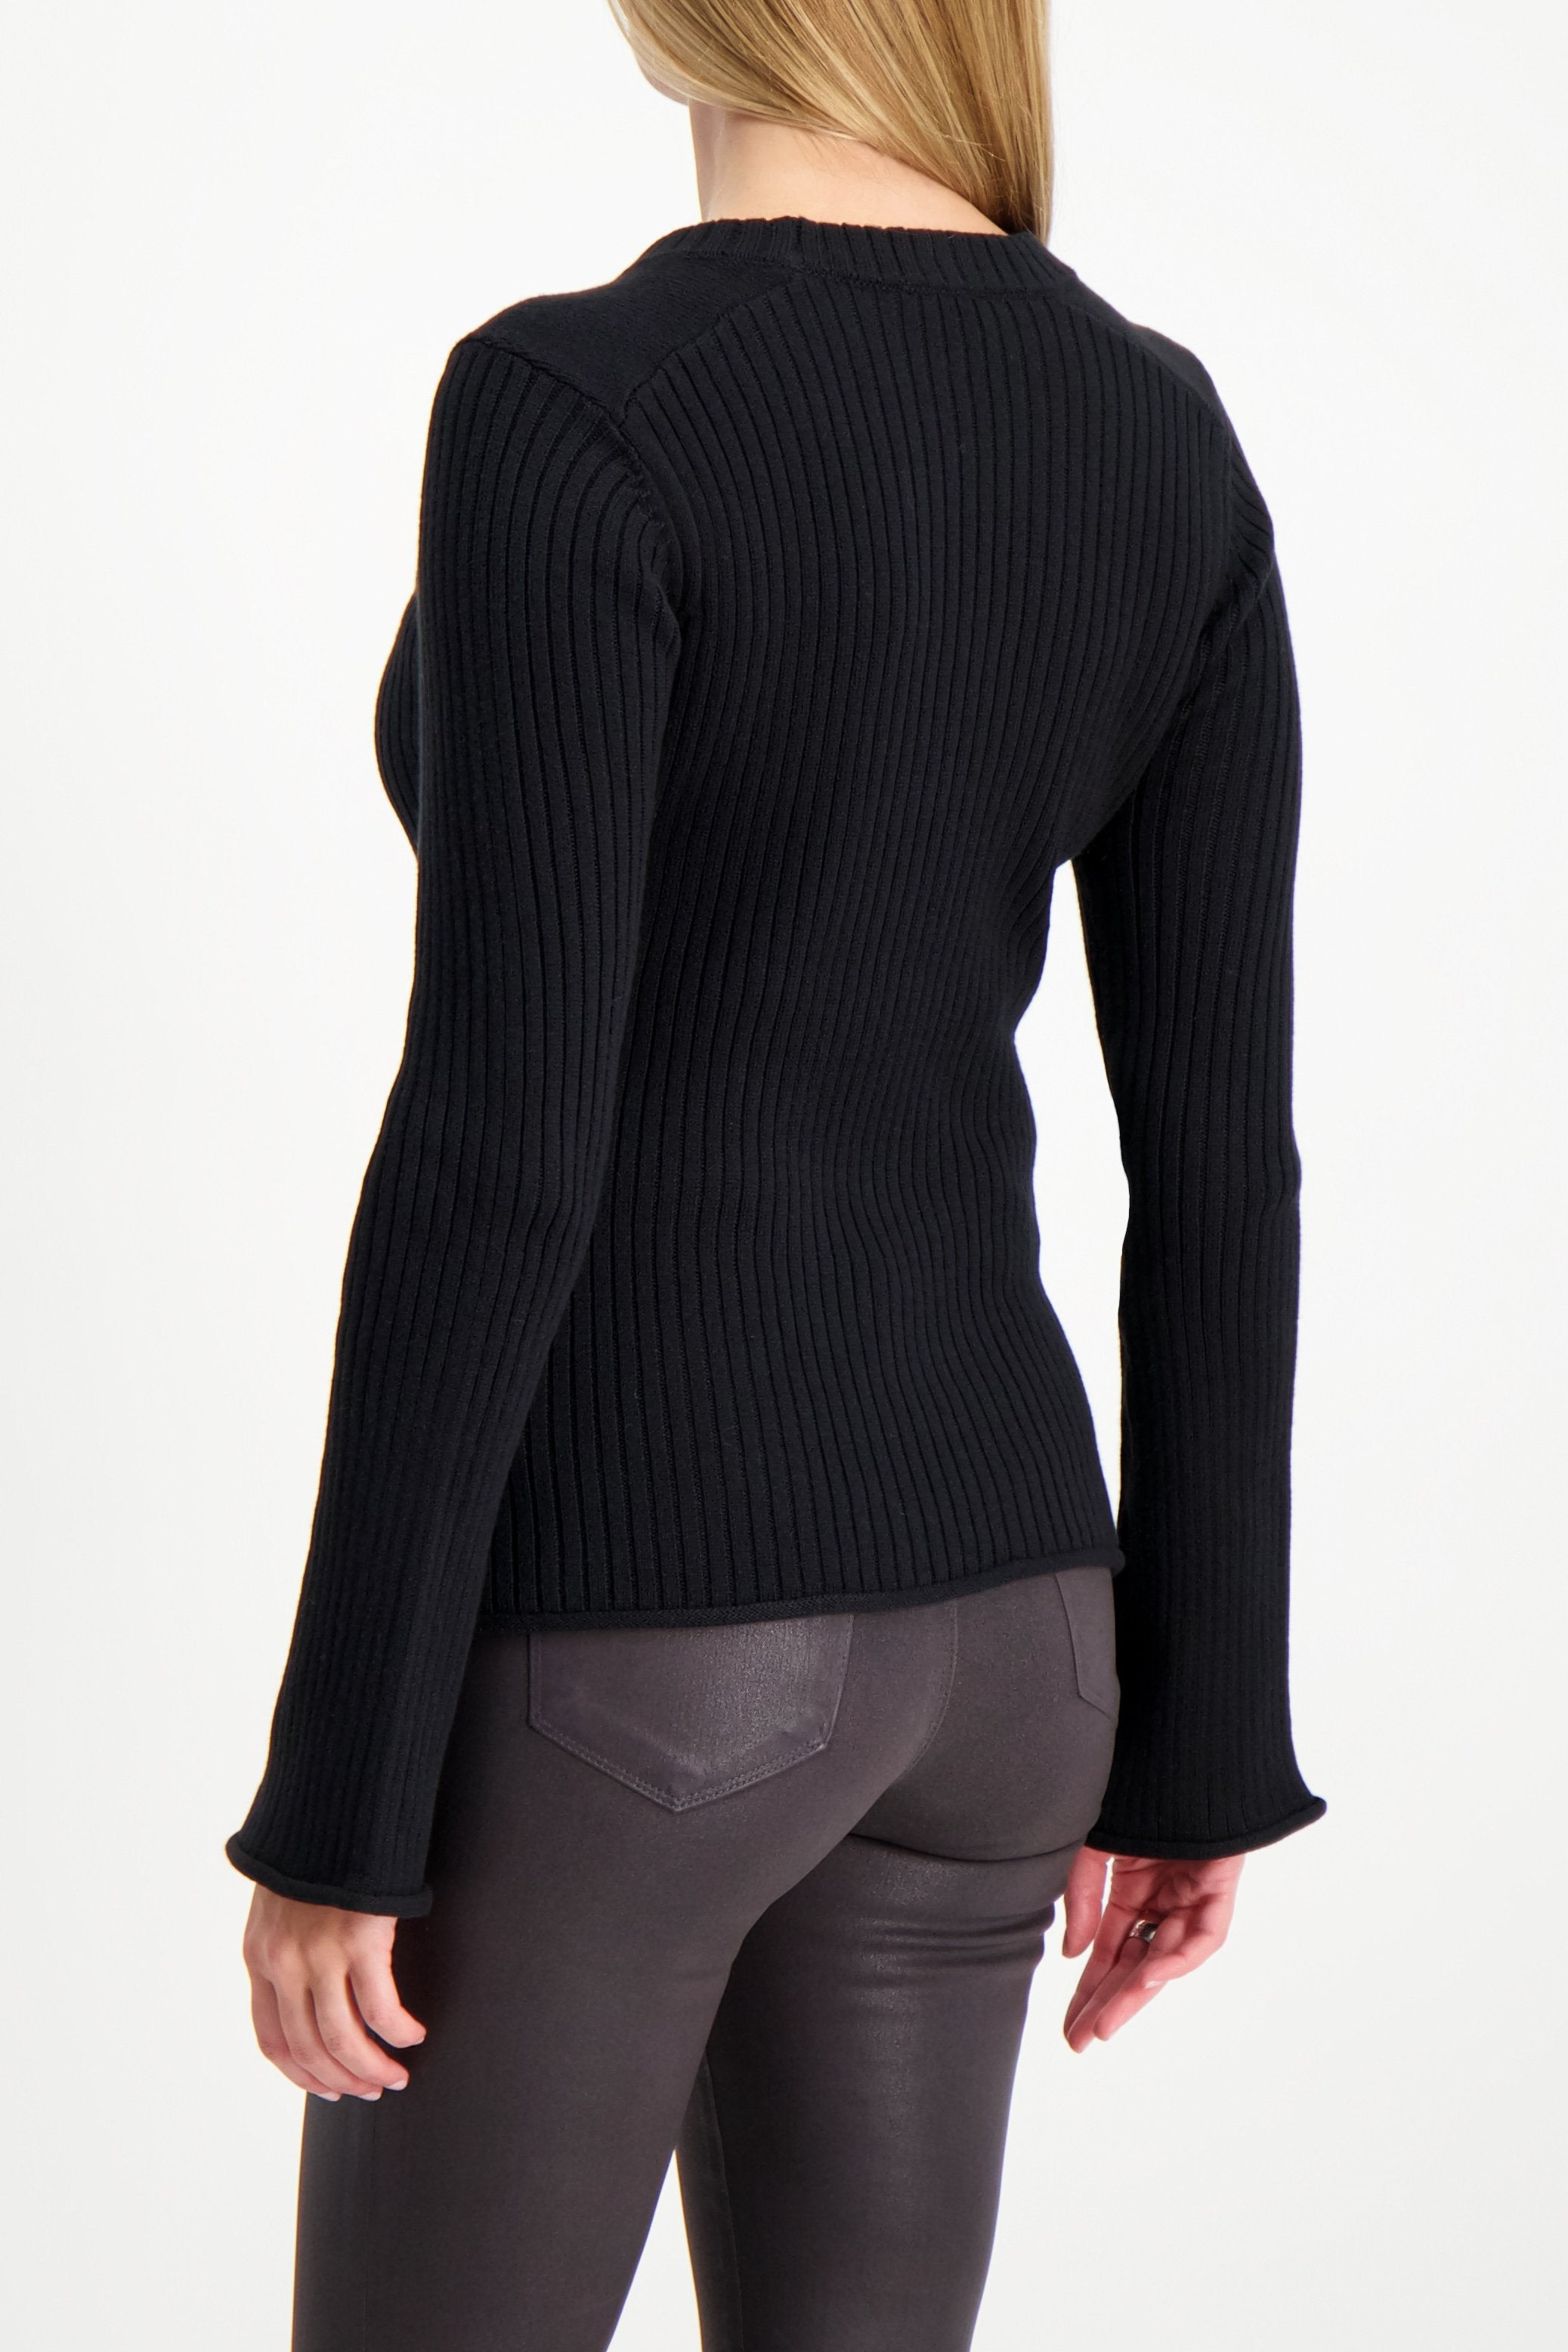 Back Crop Image Of Model Wearing L'AGENCE Pasha Sweater Black